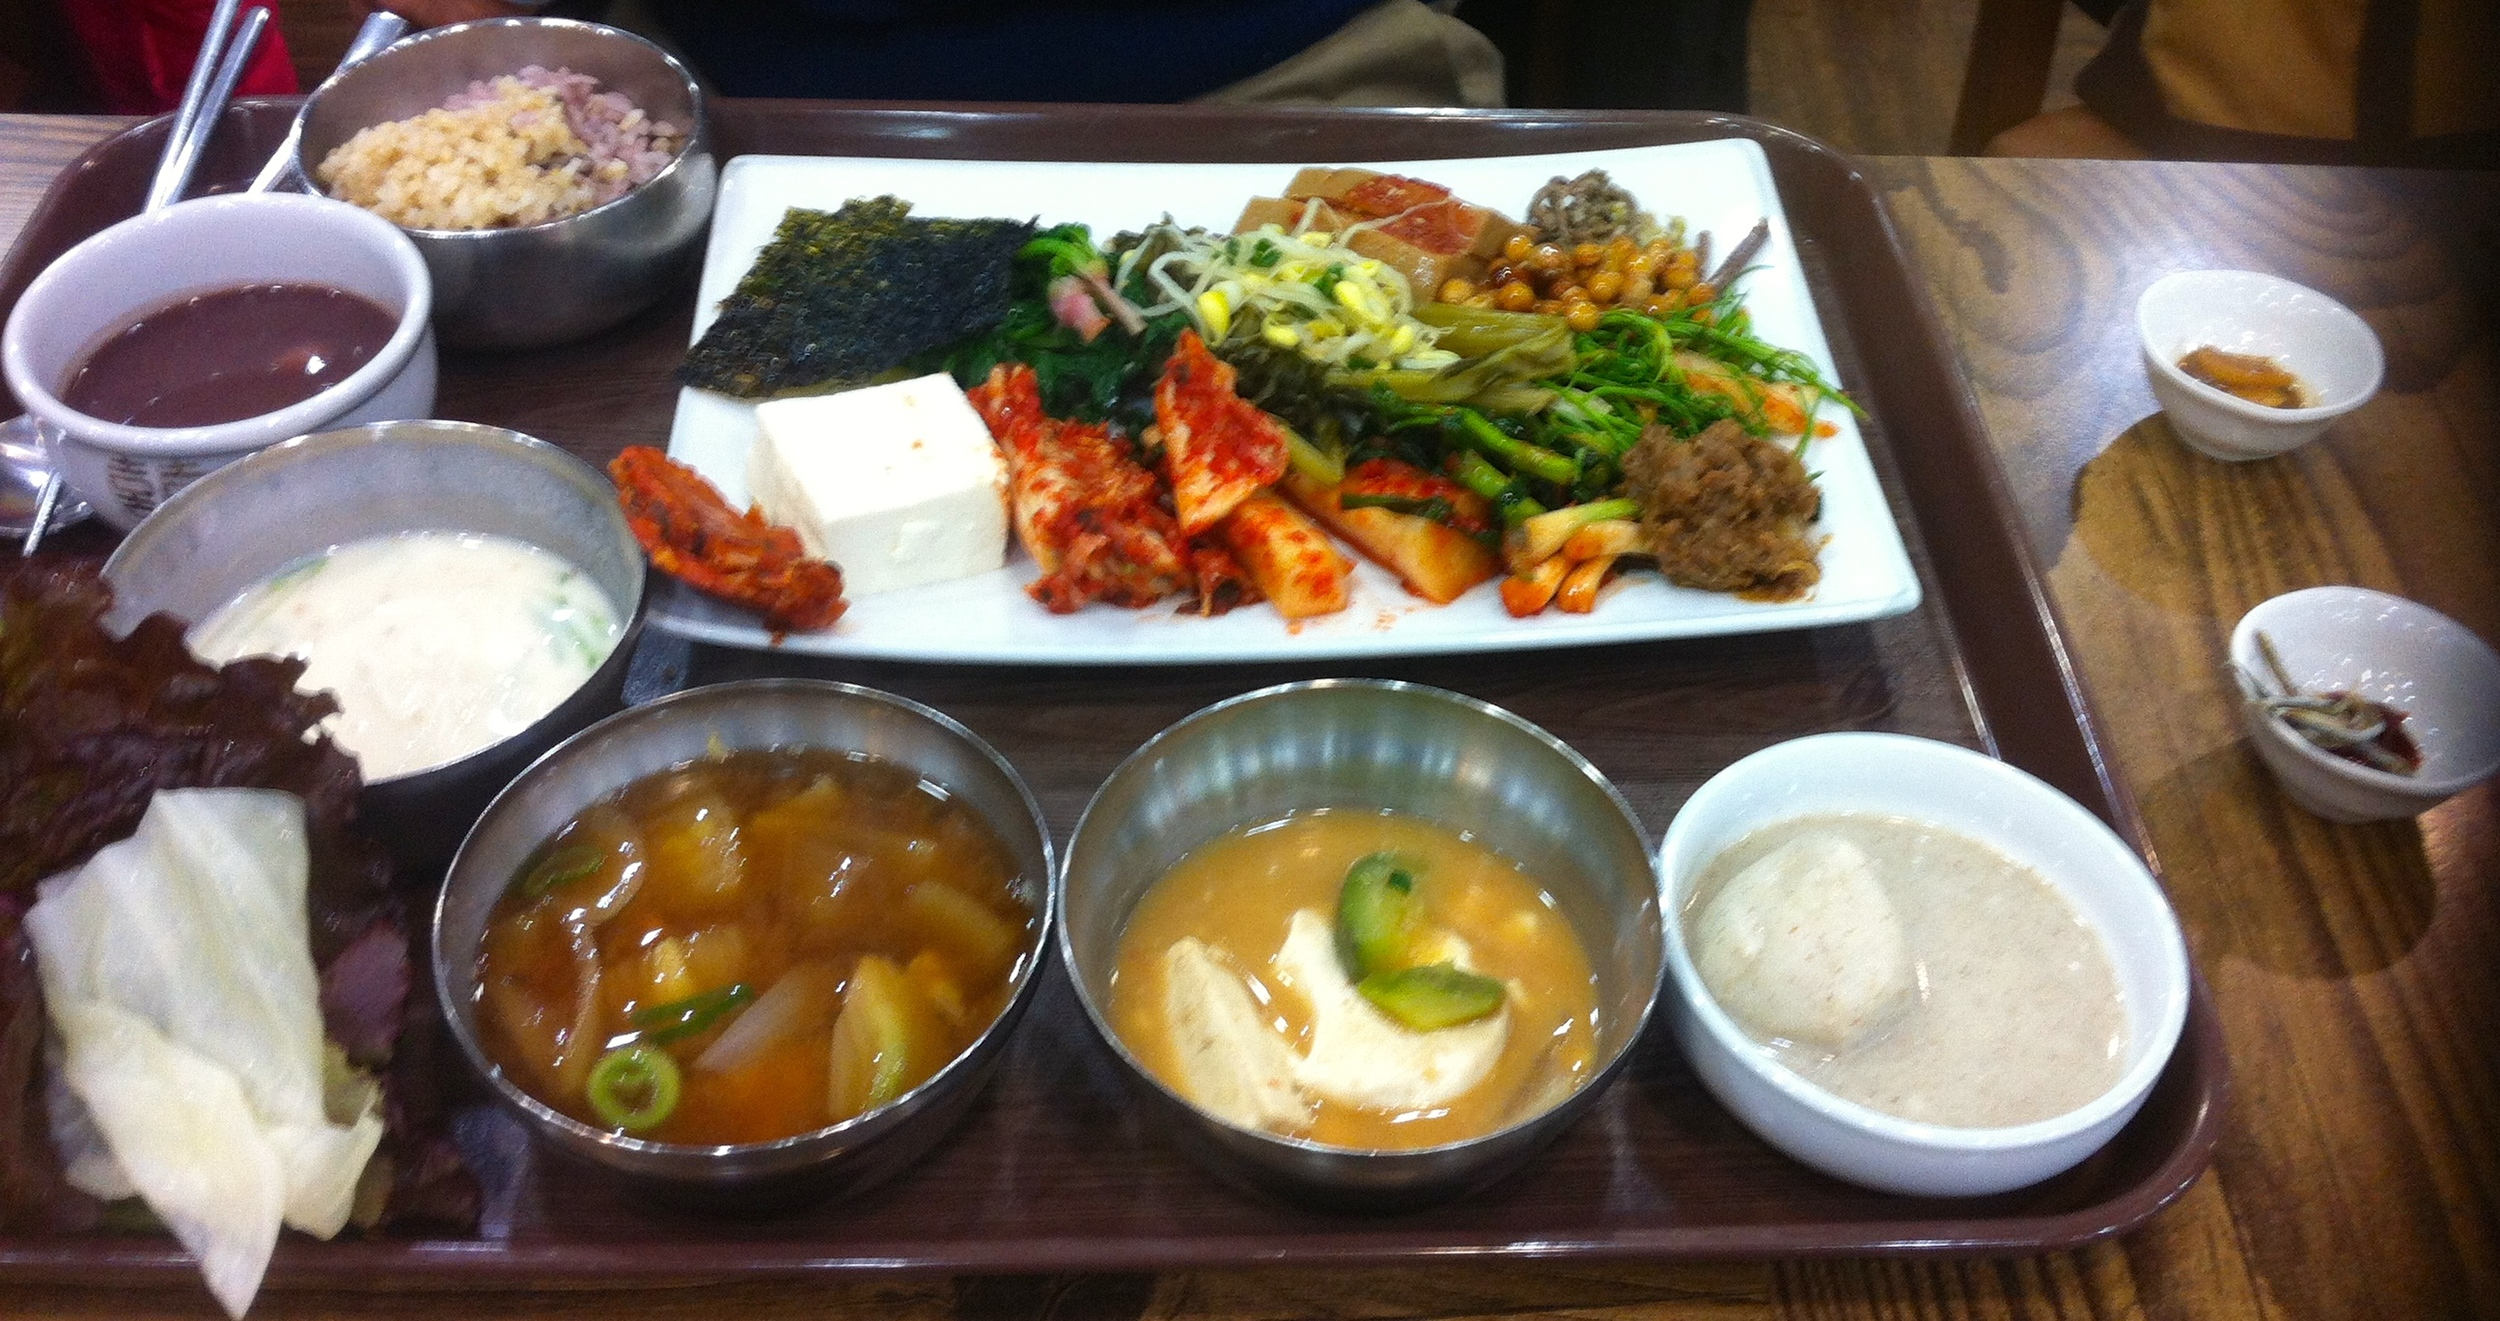 Traditional Korean food very healthy and delicious